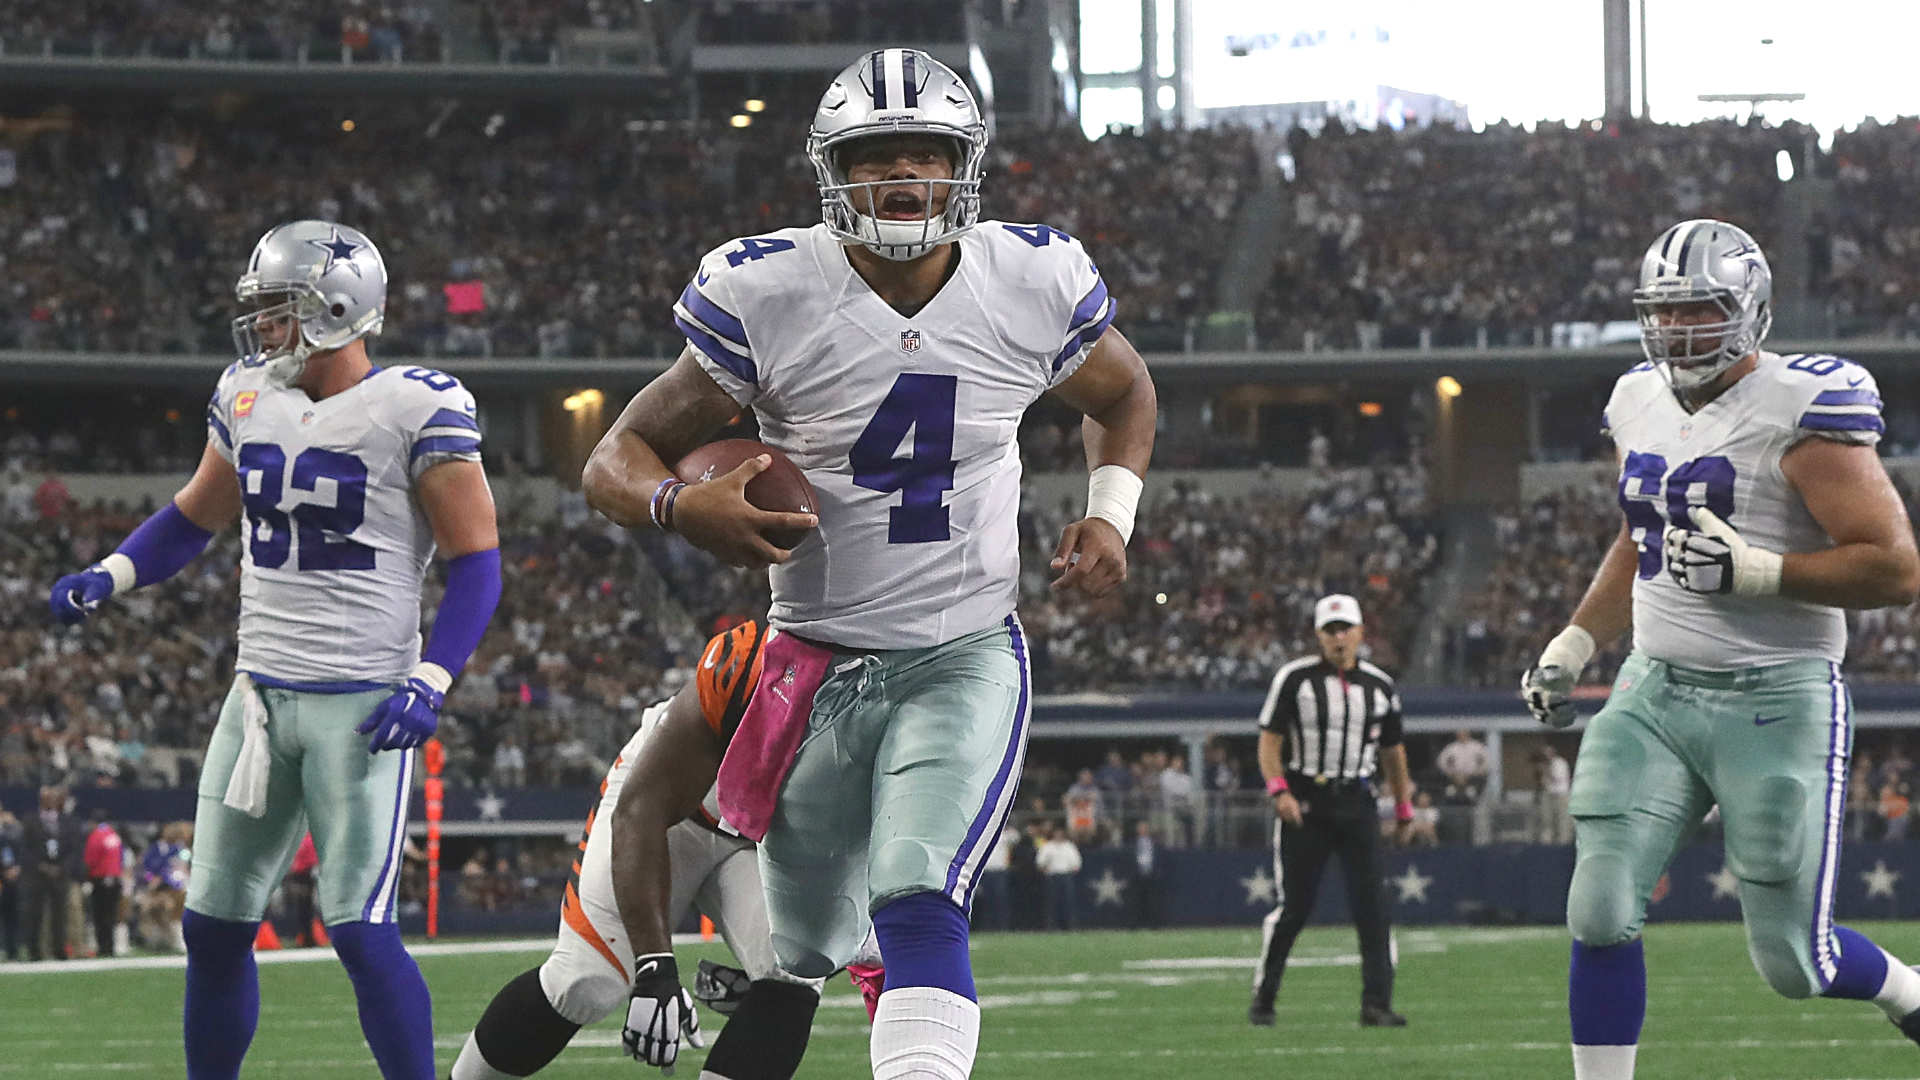 Cowboys Headlines - Surprise, Surprise: Unexpected NFC Landscape Benefits Cowboys